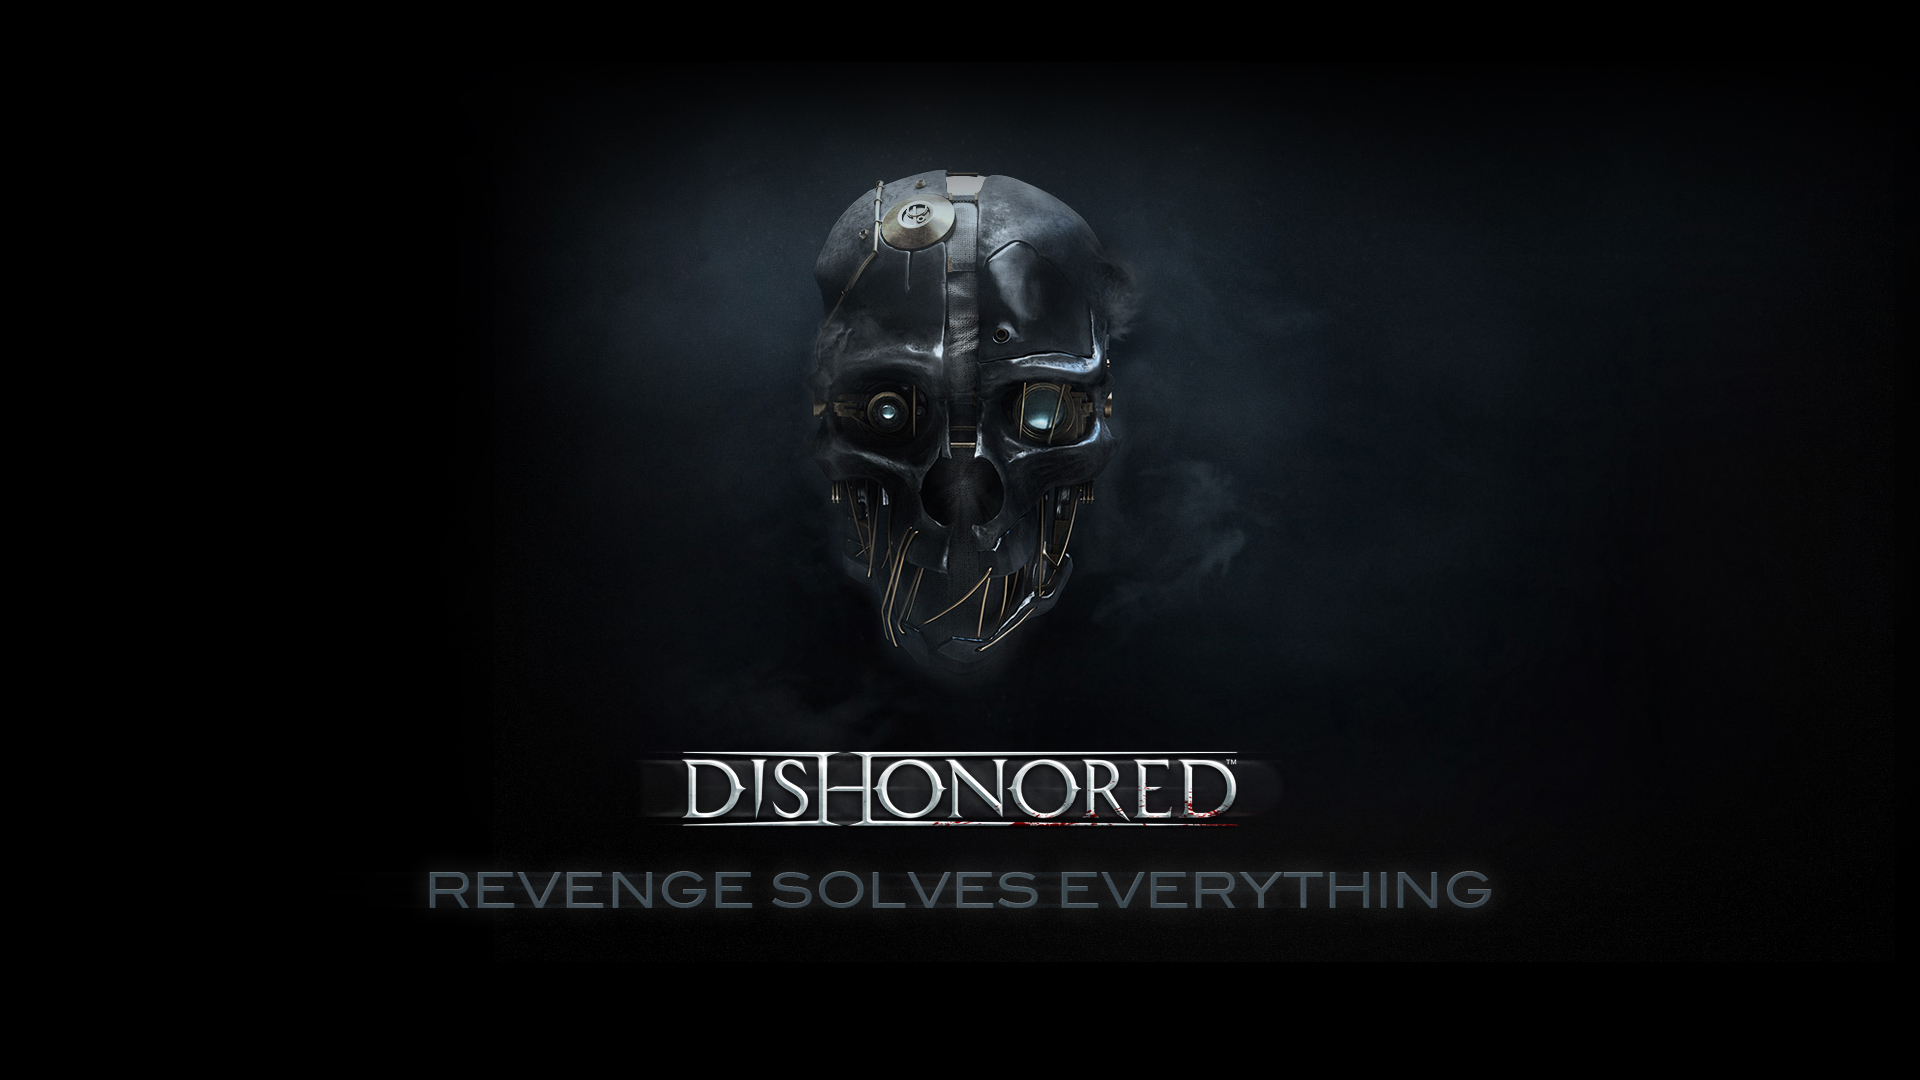 Prison Break Hd Wallpapers Download Dishonored Full Hd Wallpaper And Background 1920x1080